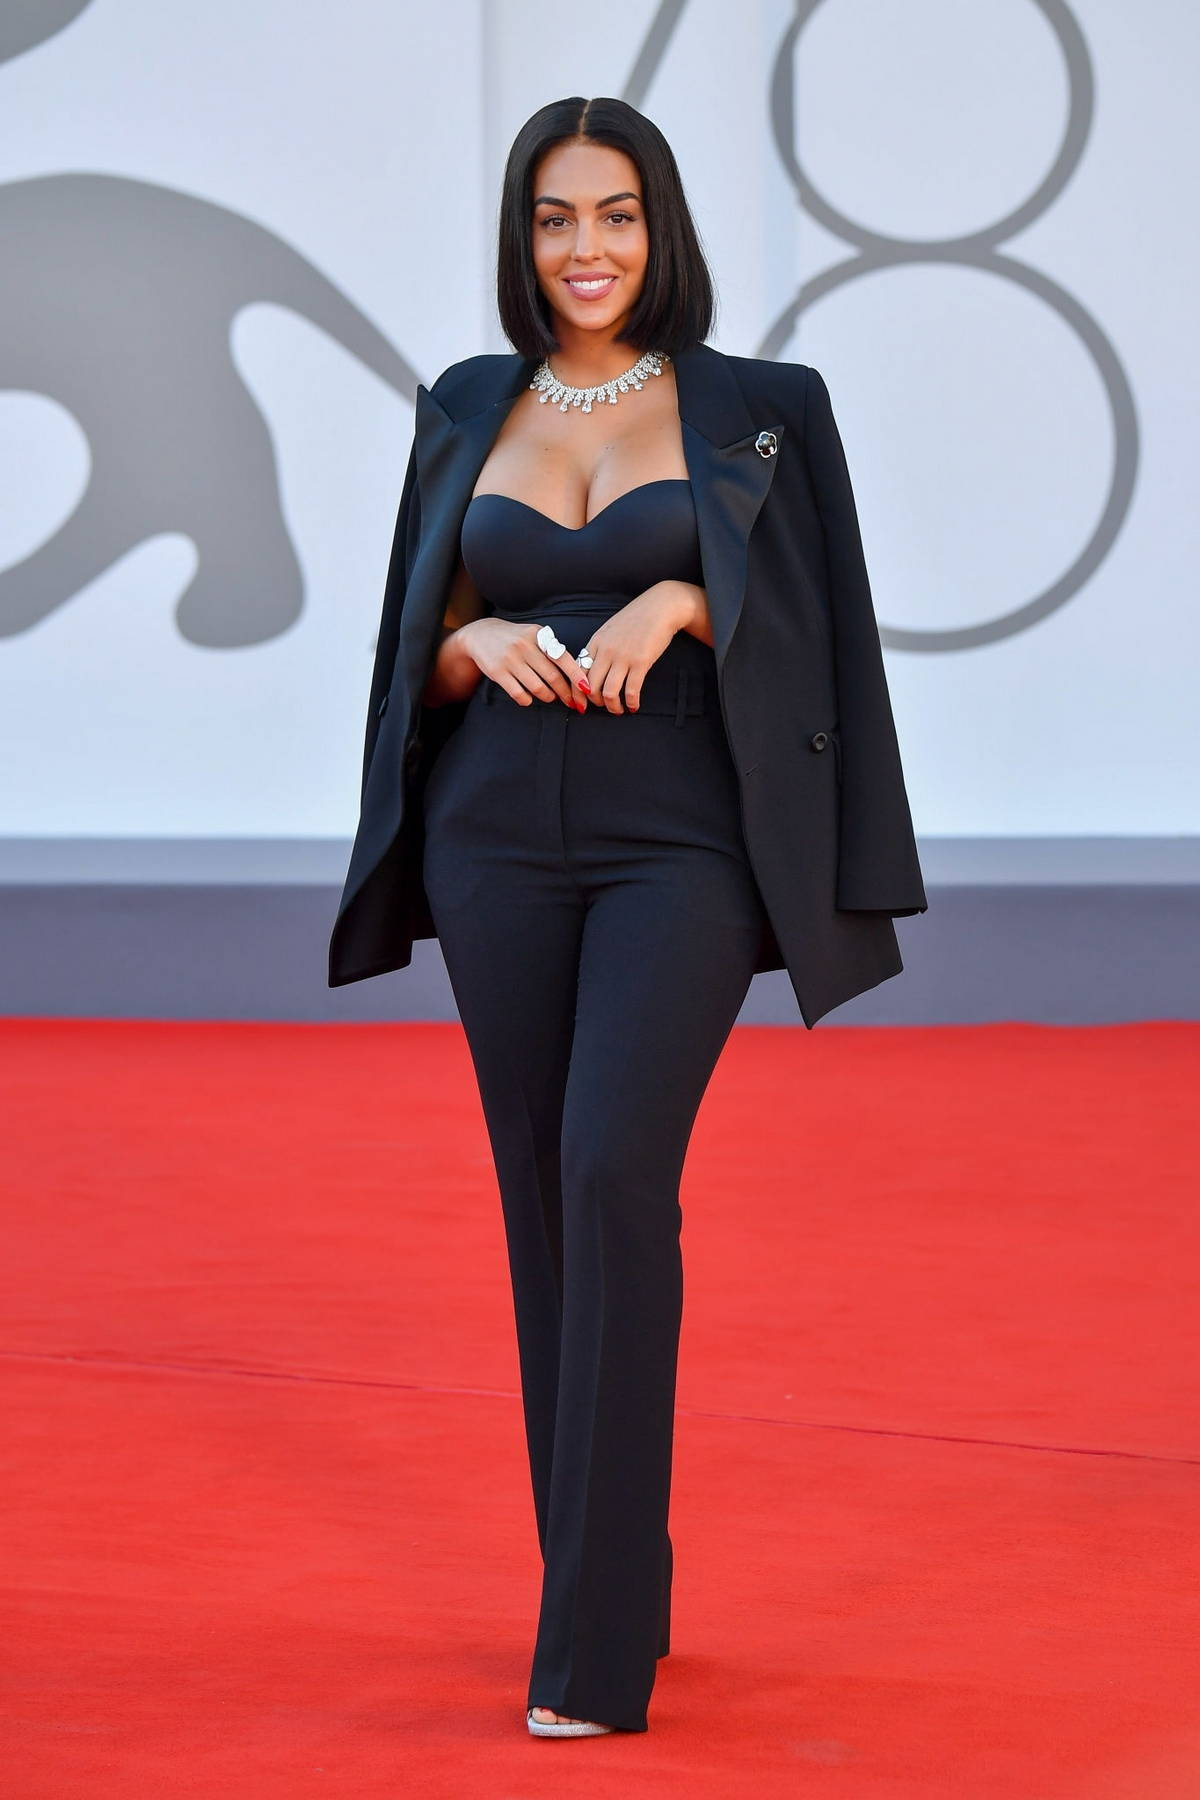 Georgina Rodriguez attends the Premiere of 'Madres Paralelas' during the 78th Venice International Film Festival in Venice, Italy